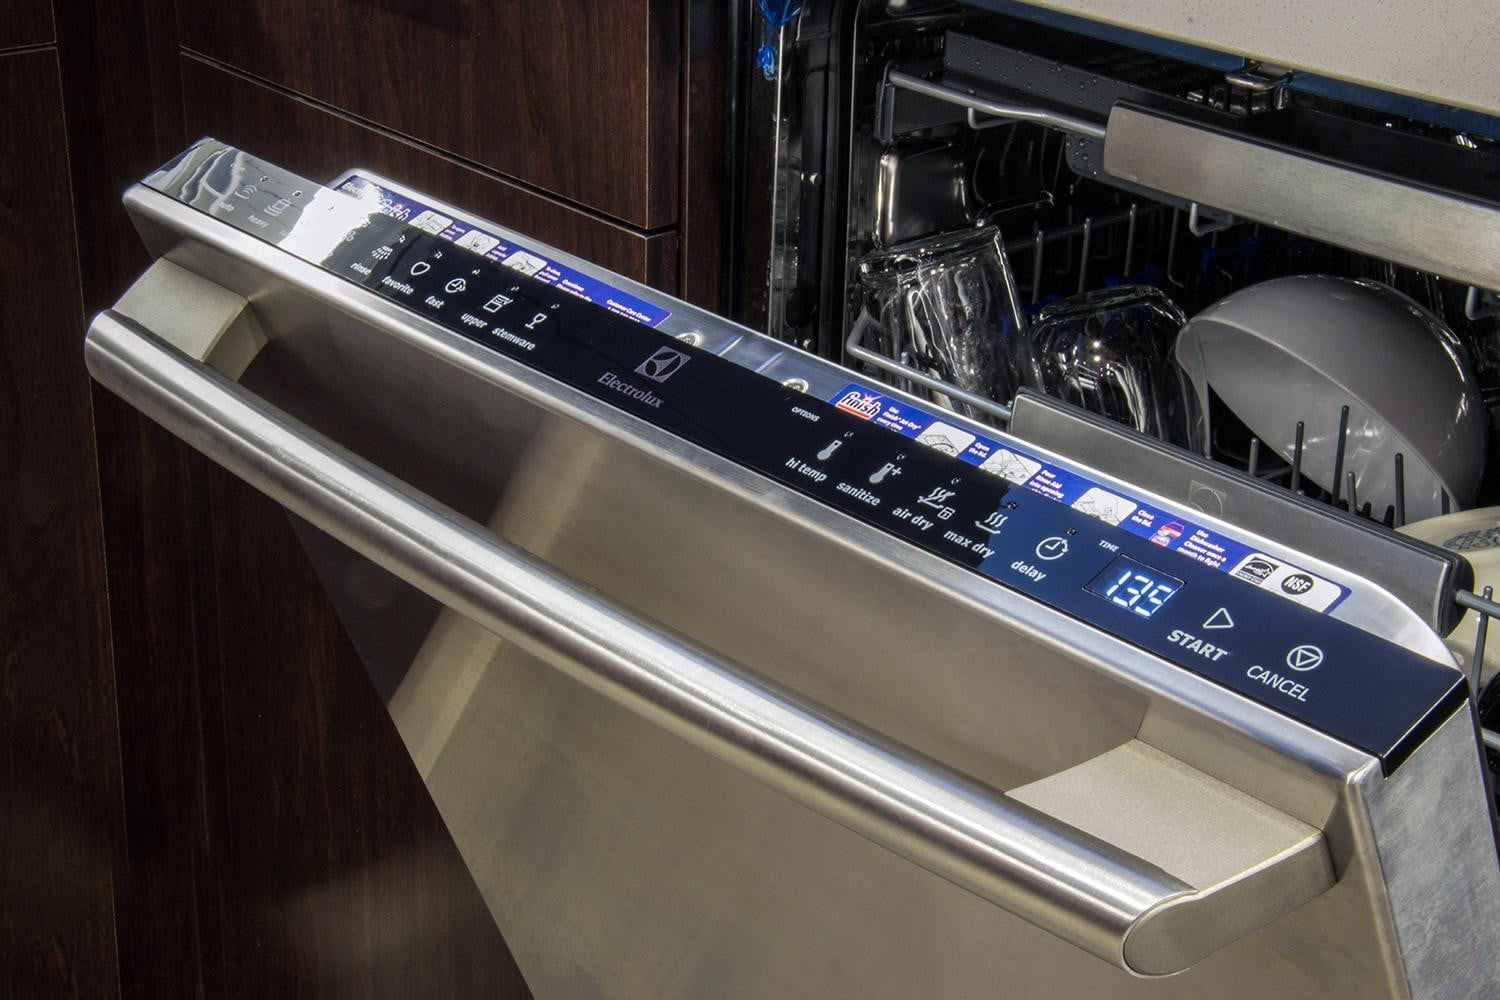 Electrolux ei24id50qs review built in dishwasher digital trends